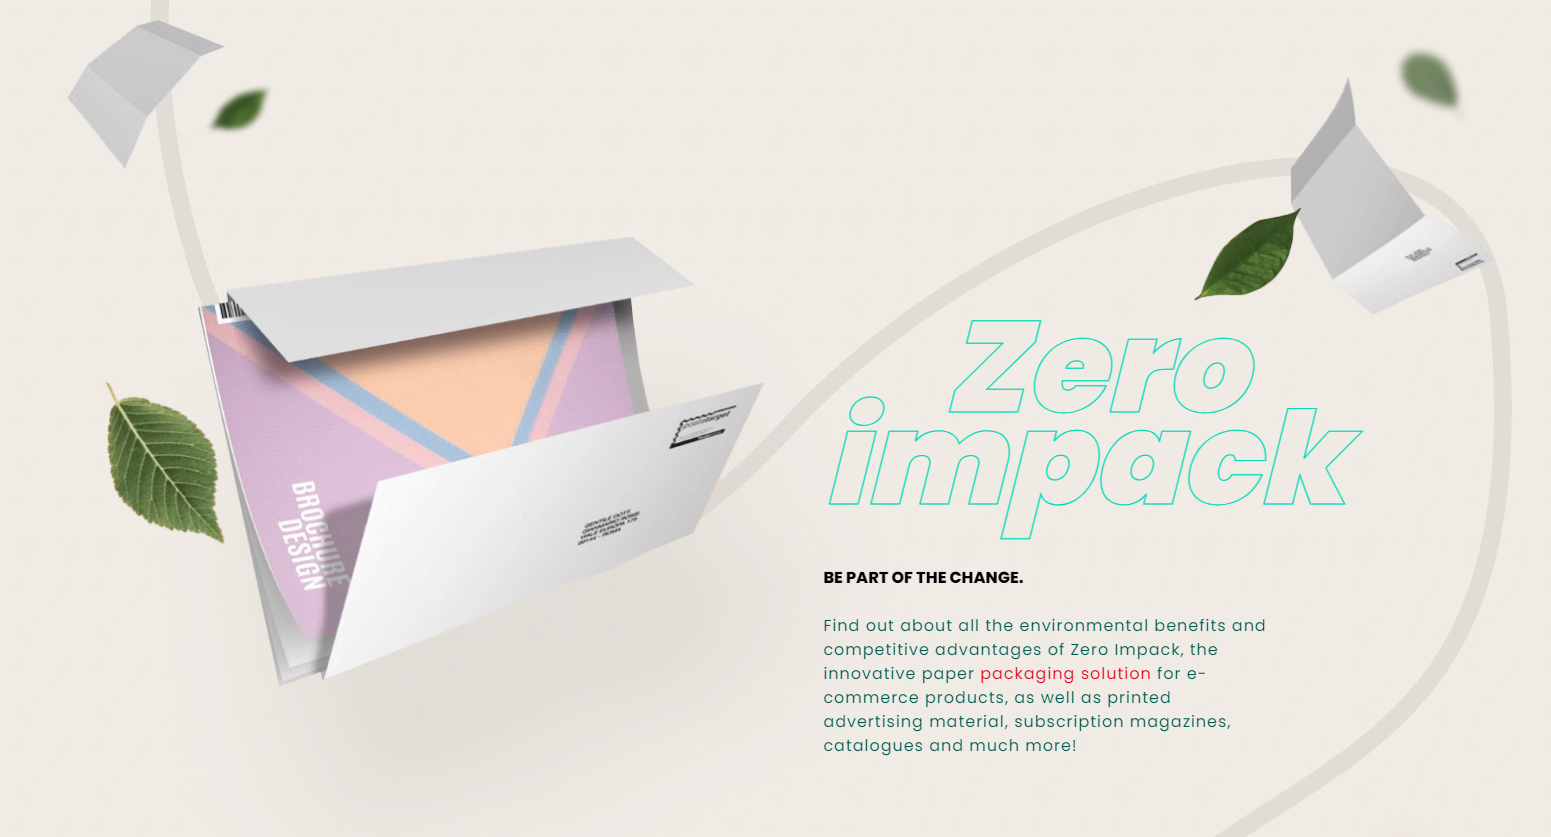 New shapes and materials for increasingly sustainable e-commerce packaging - Photo 7